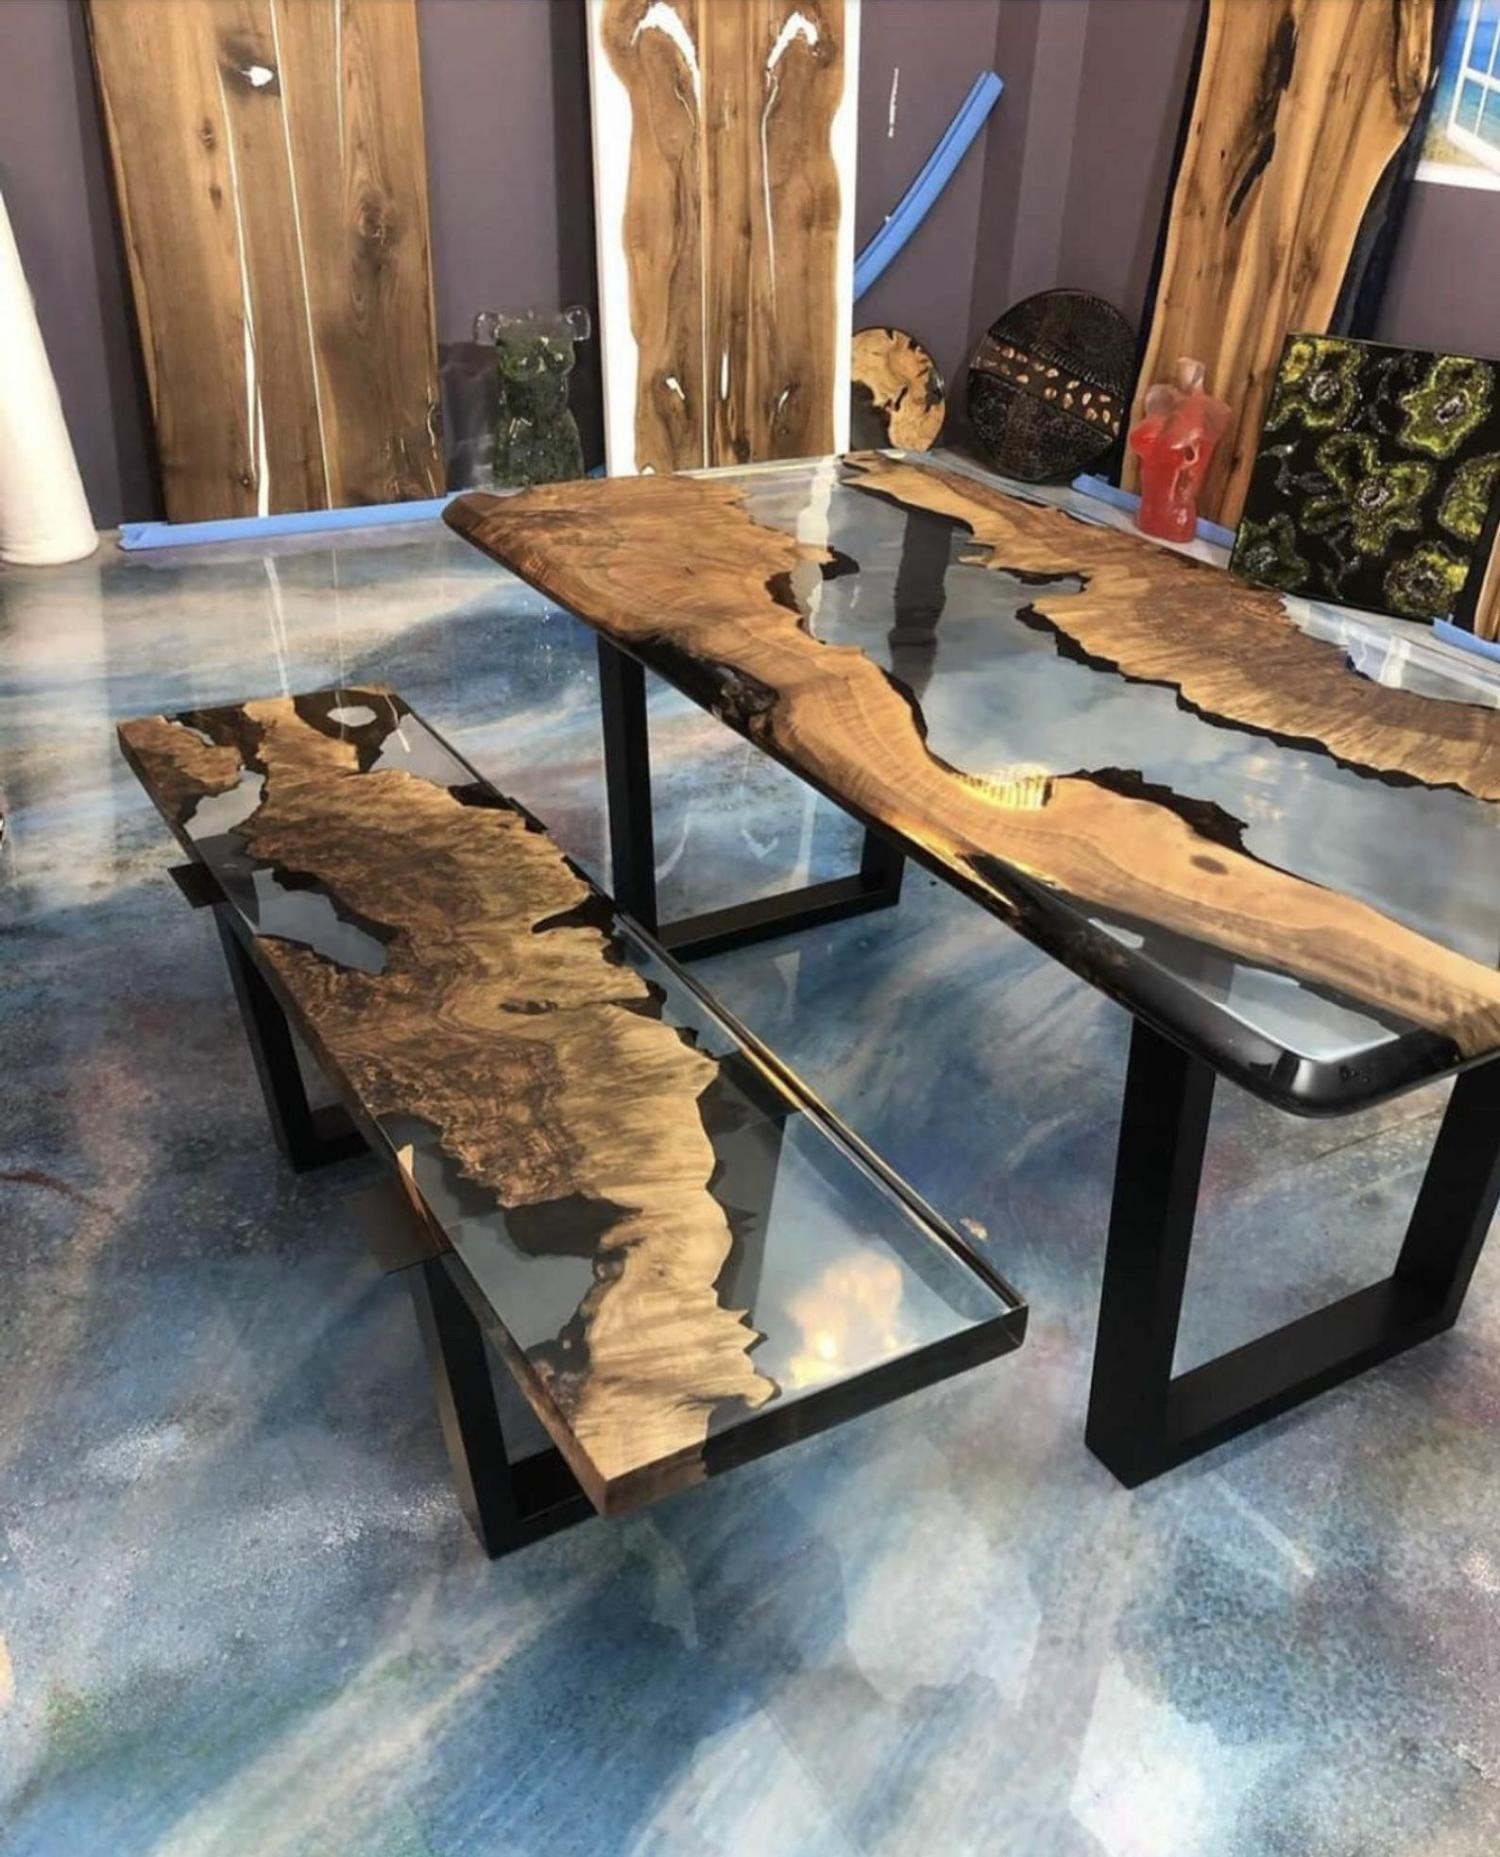 epoxy table with a bench both made with stunning transparent epoxy/resin